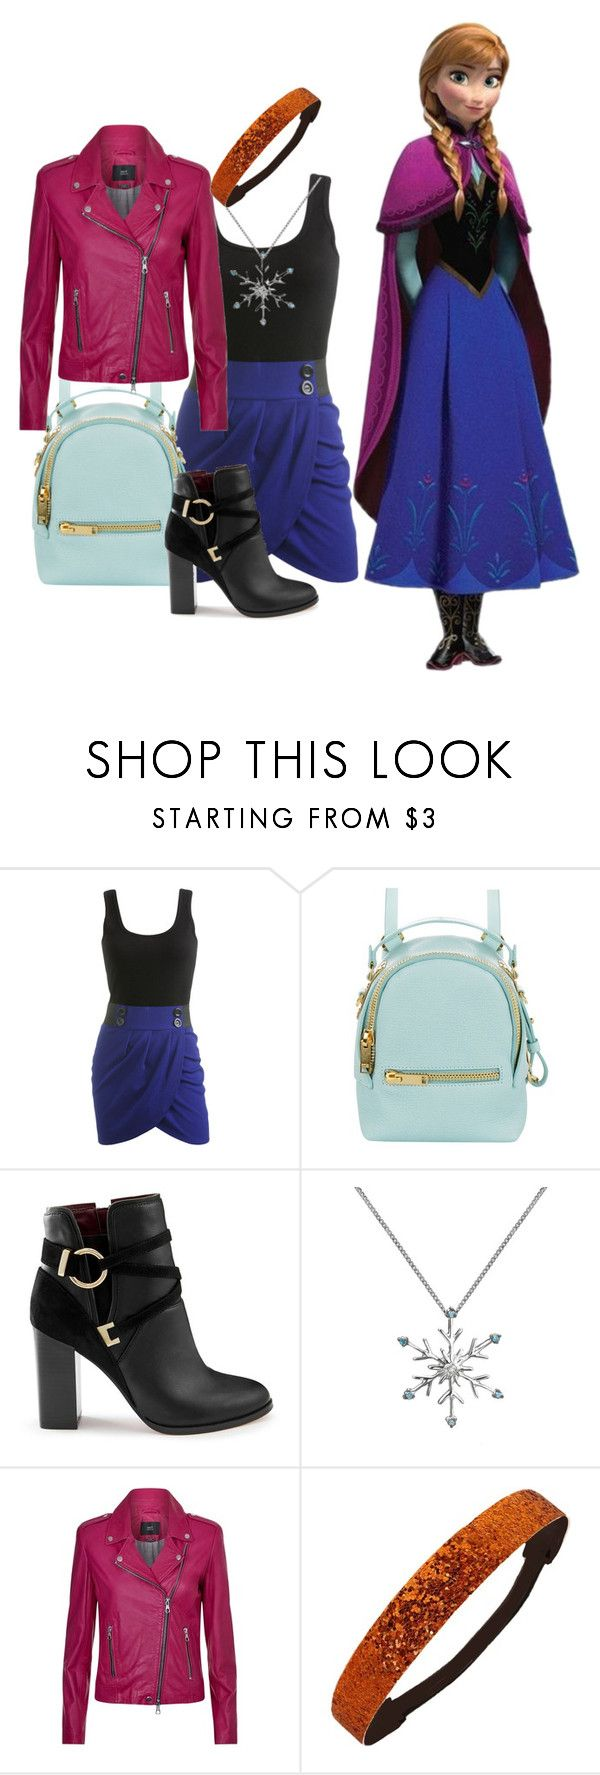 """Frozen"" by fashionfreak4everr ❤ liked on Polyvore featuring Wet Seal, Disney, Sophie Hulme, Miss Selfridge and SET"